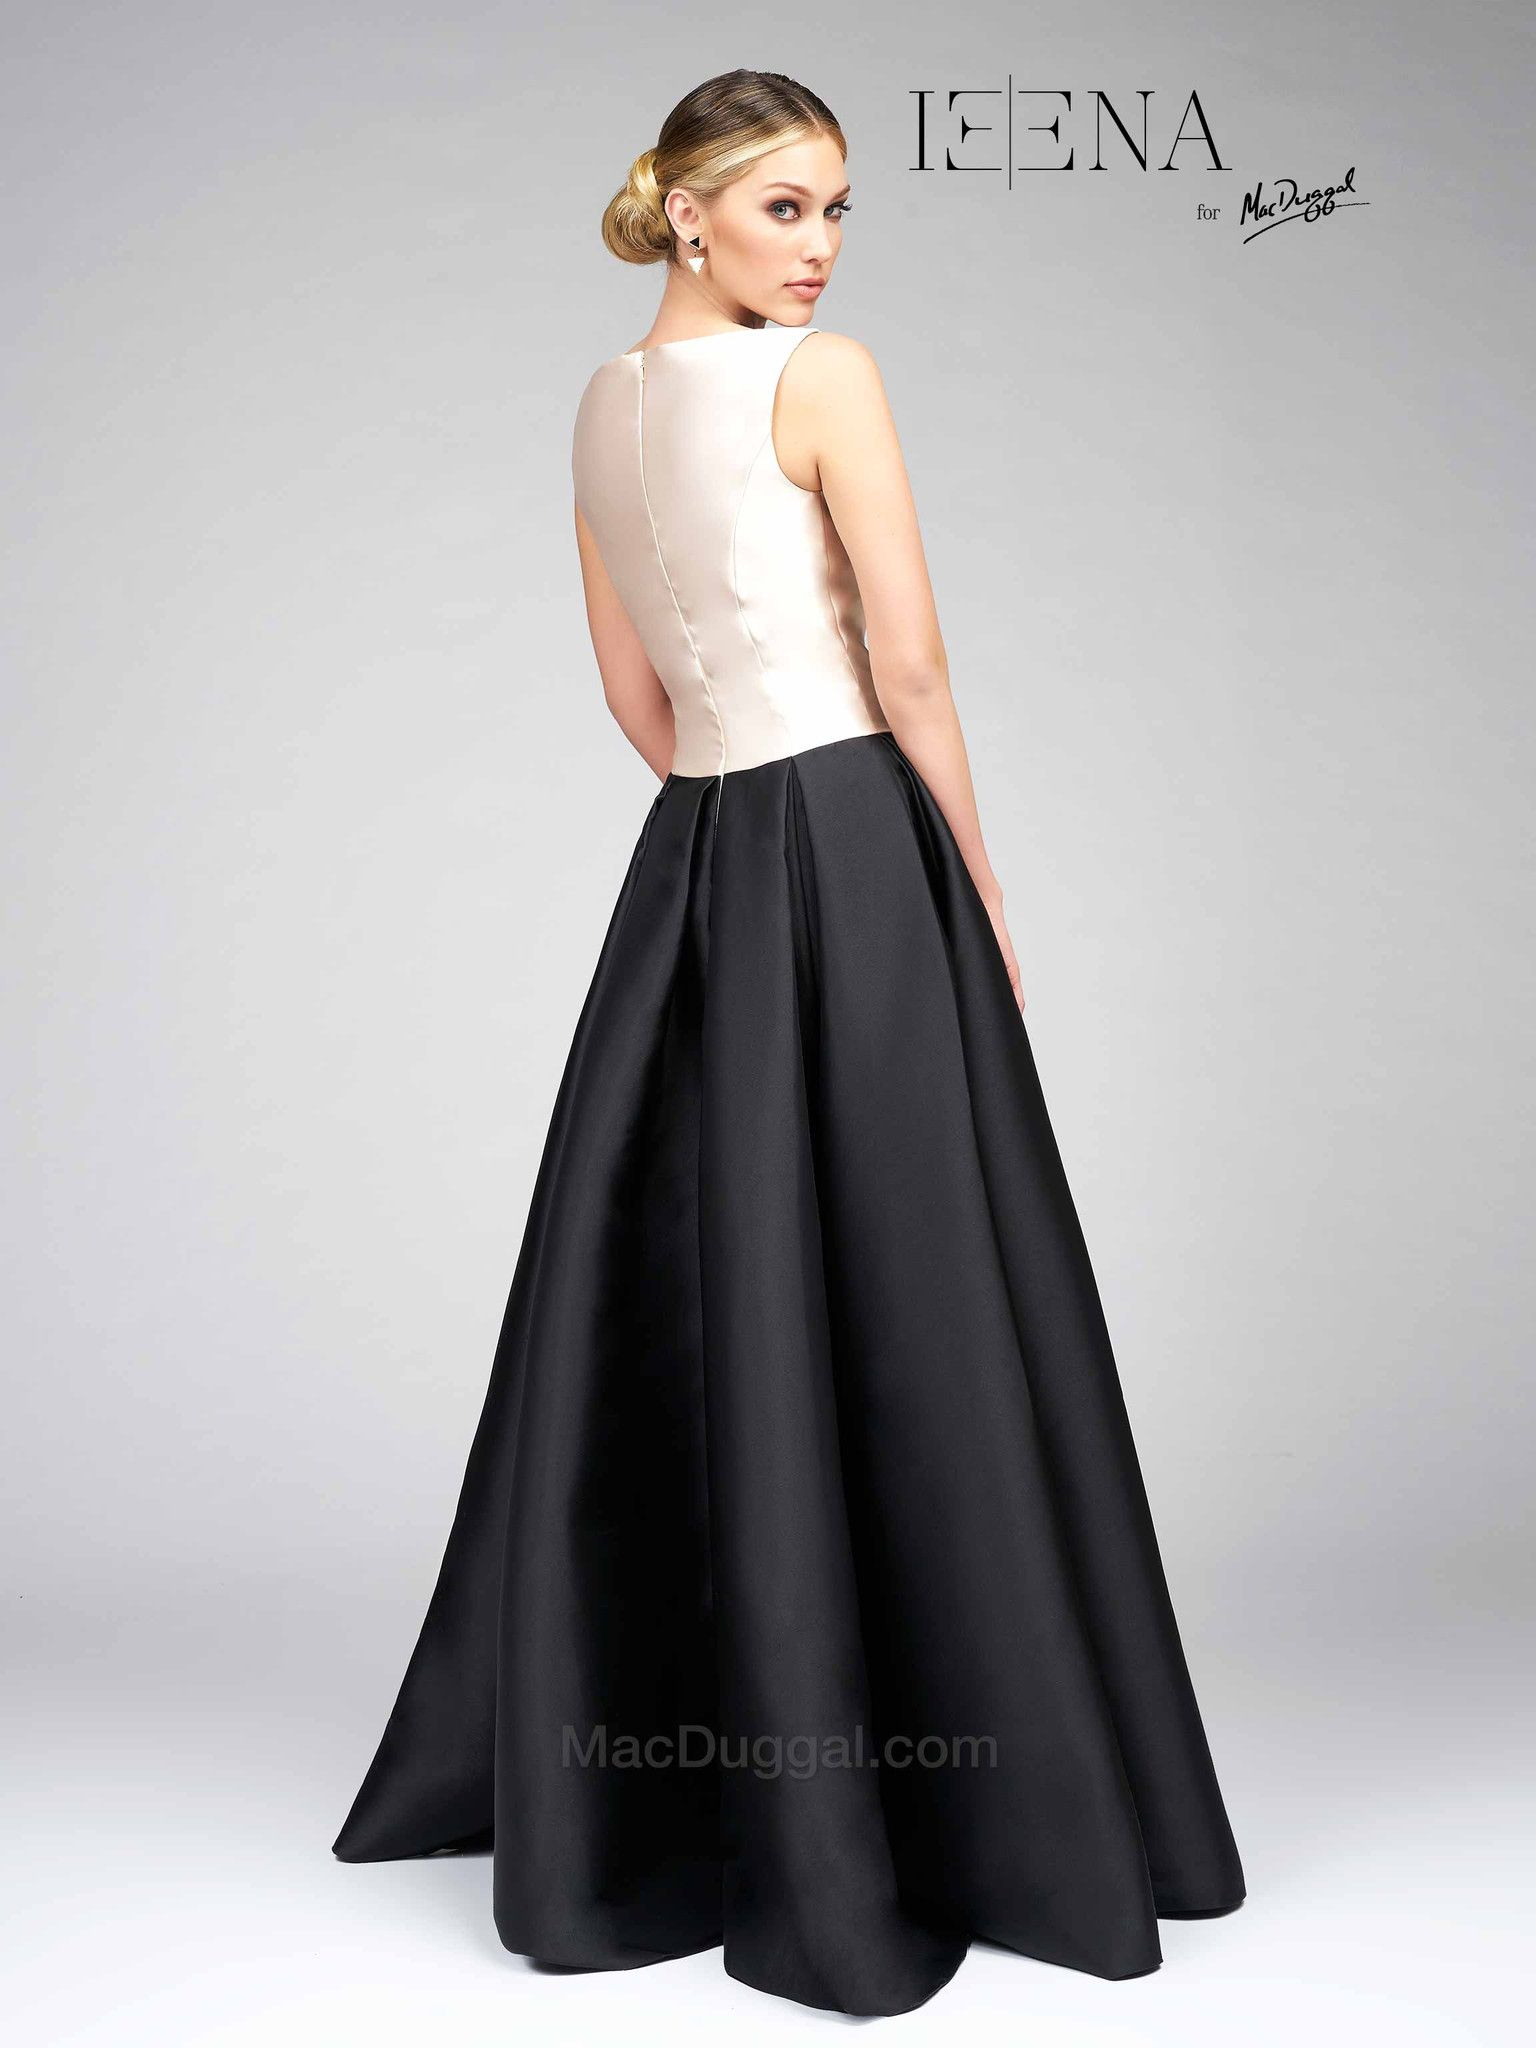 Ieena for mac duggal i products pinterest products